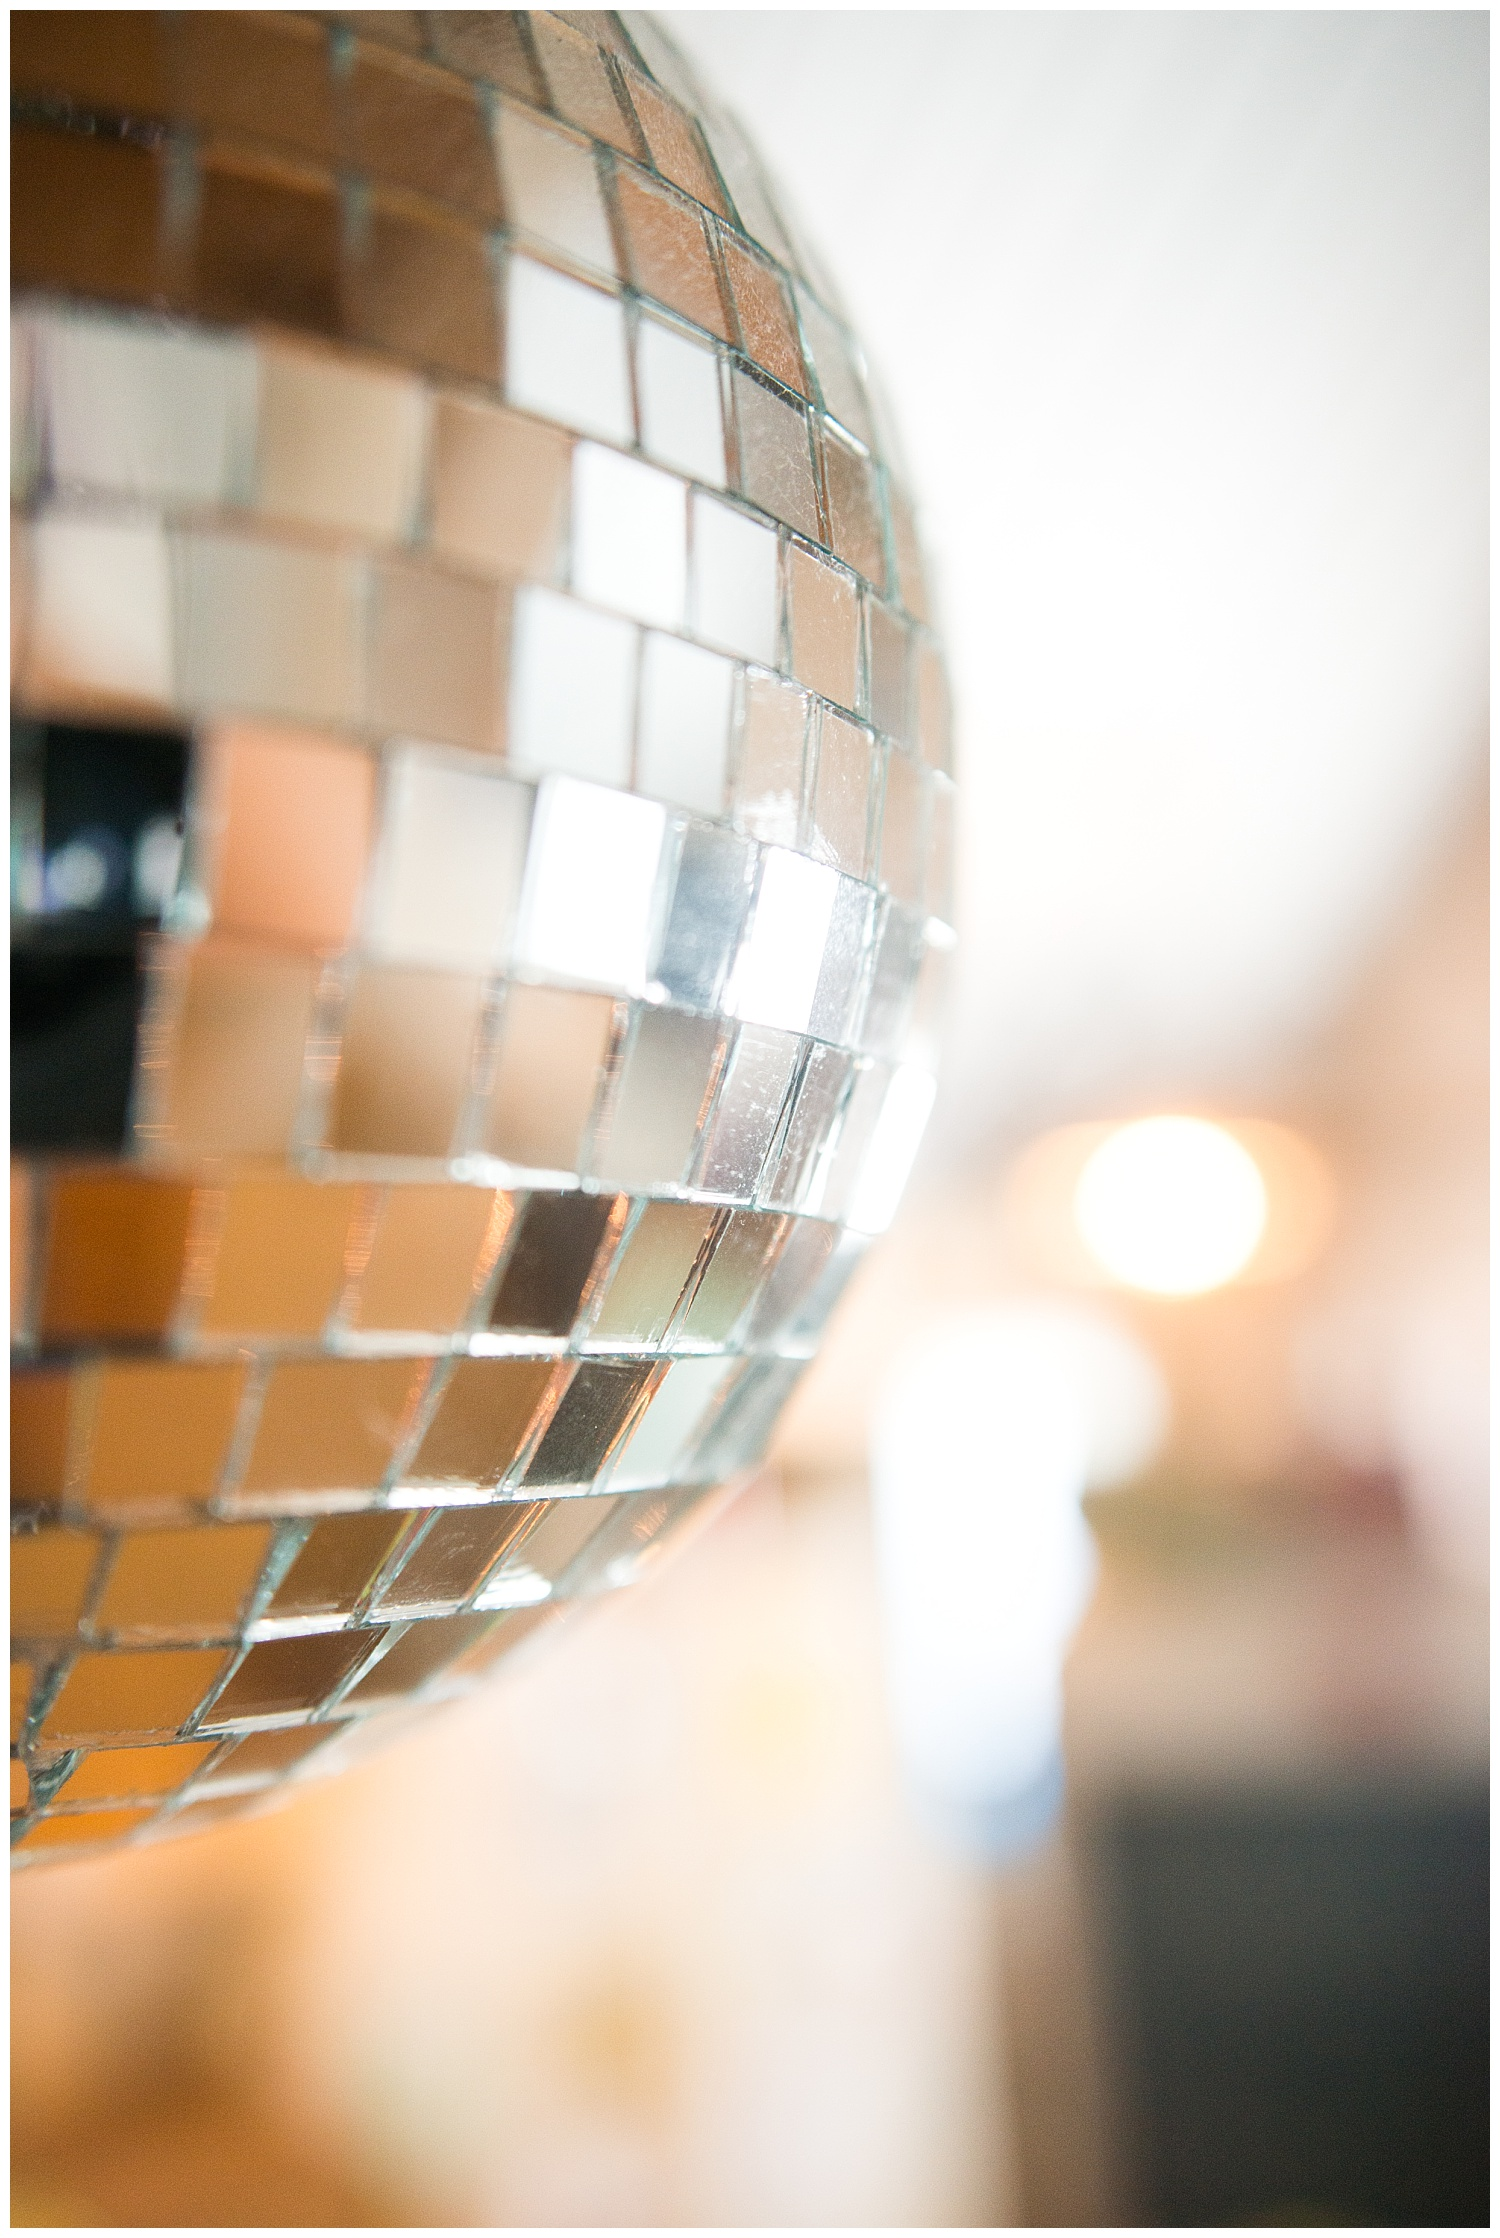 Of course she has a disco ball hanging in her home.